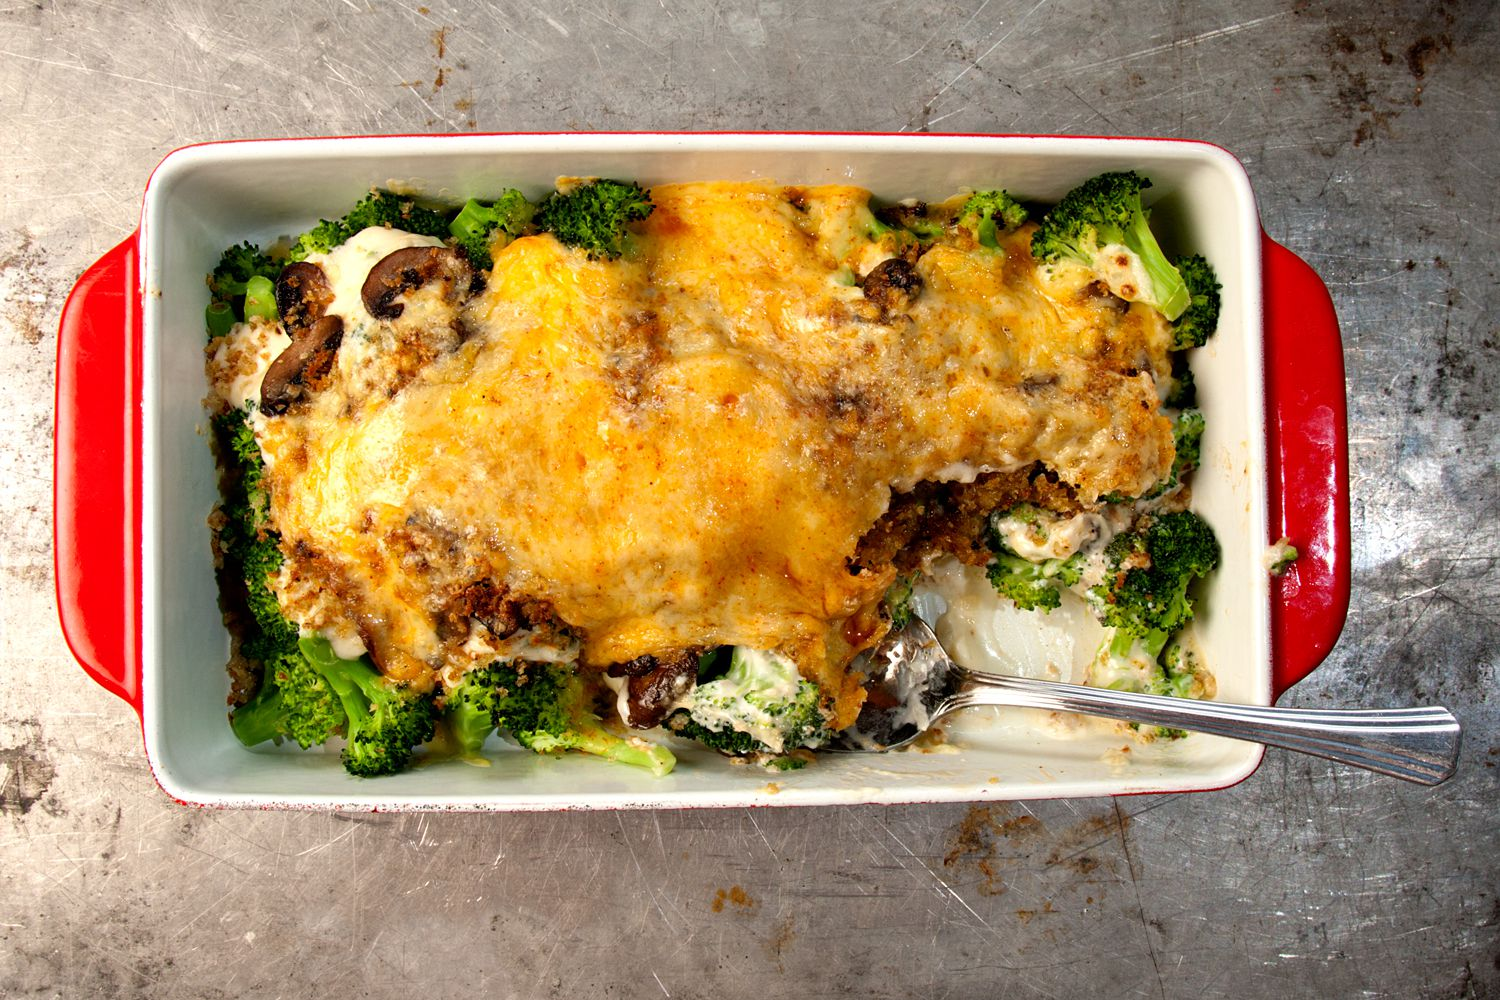 "Broccoli and cheddar are a classic pair; their mellow flavors marry in this creamy casserole. Get the recipe for <a href=""https://www.saveur.com/article/Recipes/Classic-Broccoli-Casserole"">Kellie's Broccoli Casserole</a>"